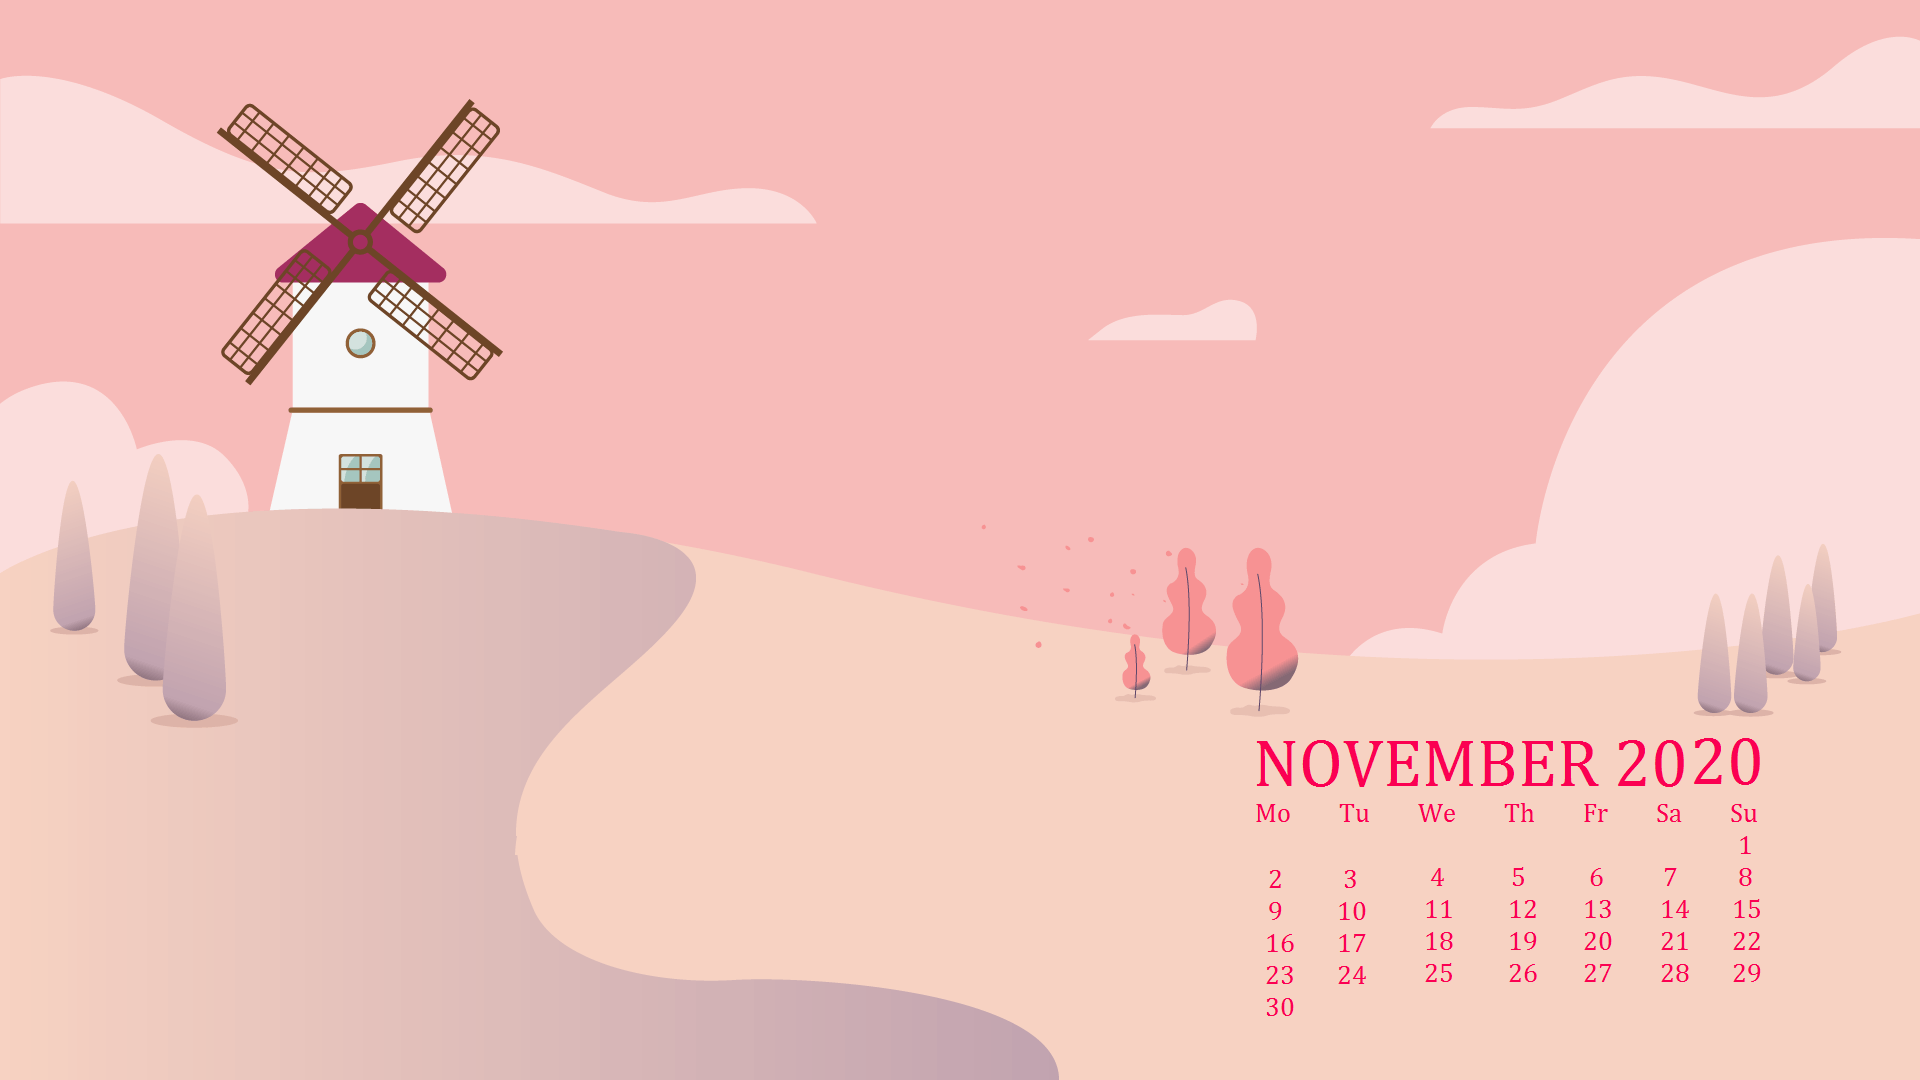 November 2020 Desktop Calendar Wallpaper